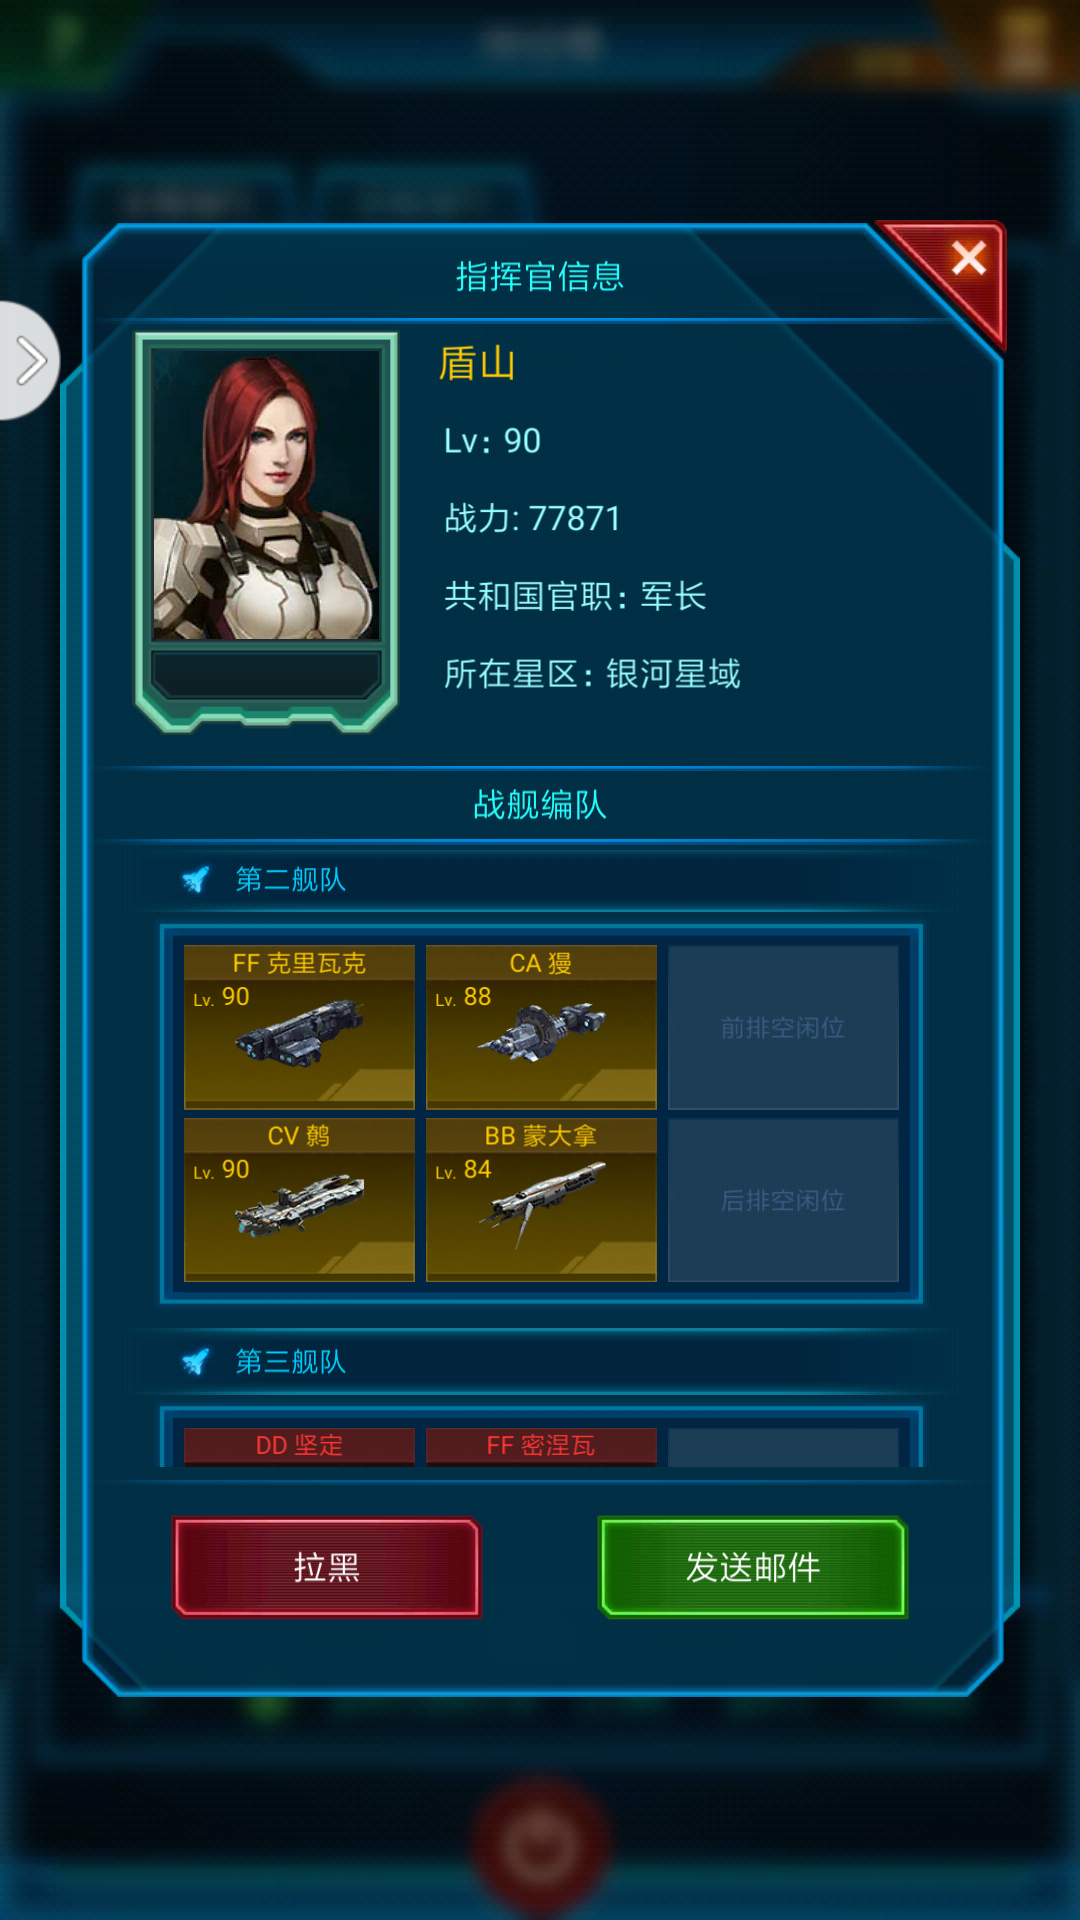 Screenshot_2018-10-11-20-09-46-368_com.xhlm.anzhuo.png